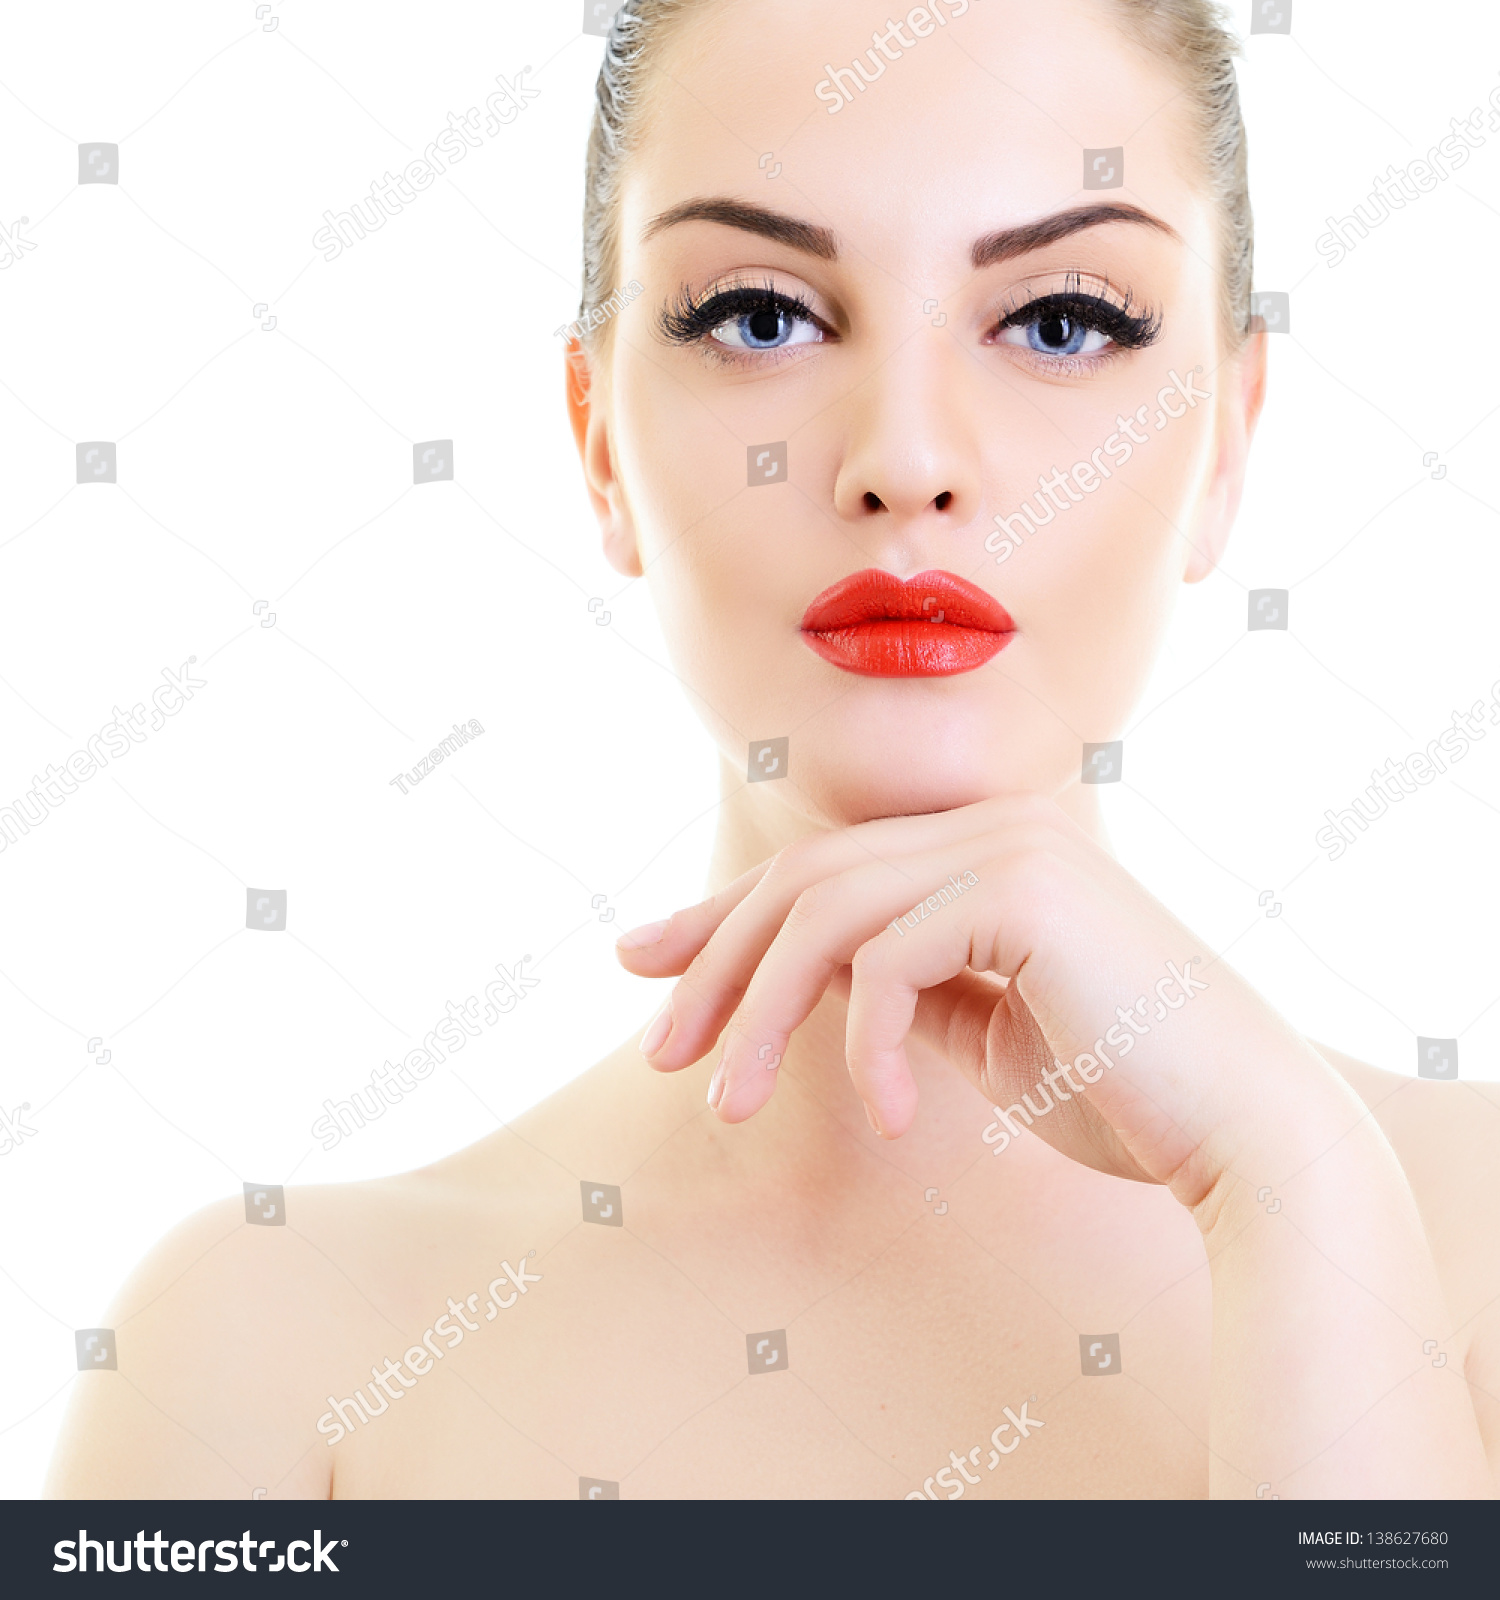 Beauty Holding It: Beauty Woman, Portrait Of Girl Holding Hand Near Her Face